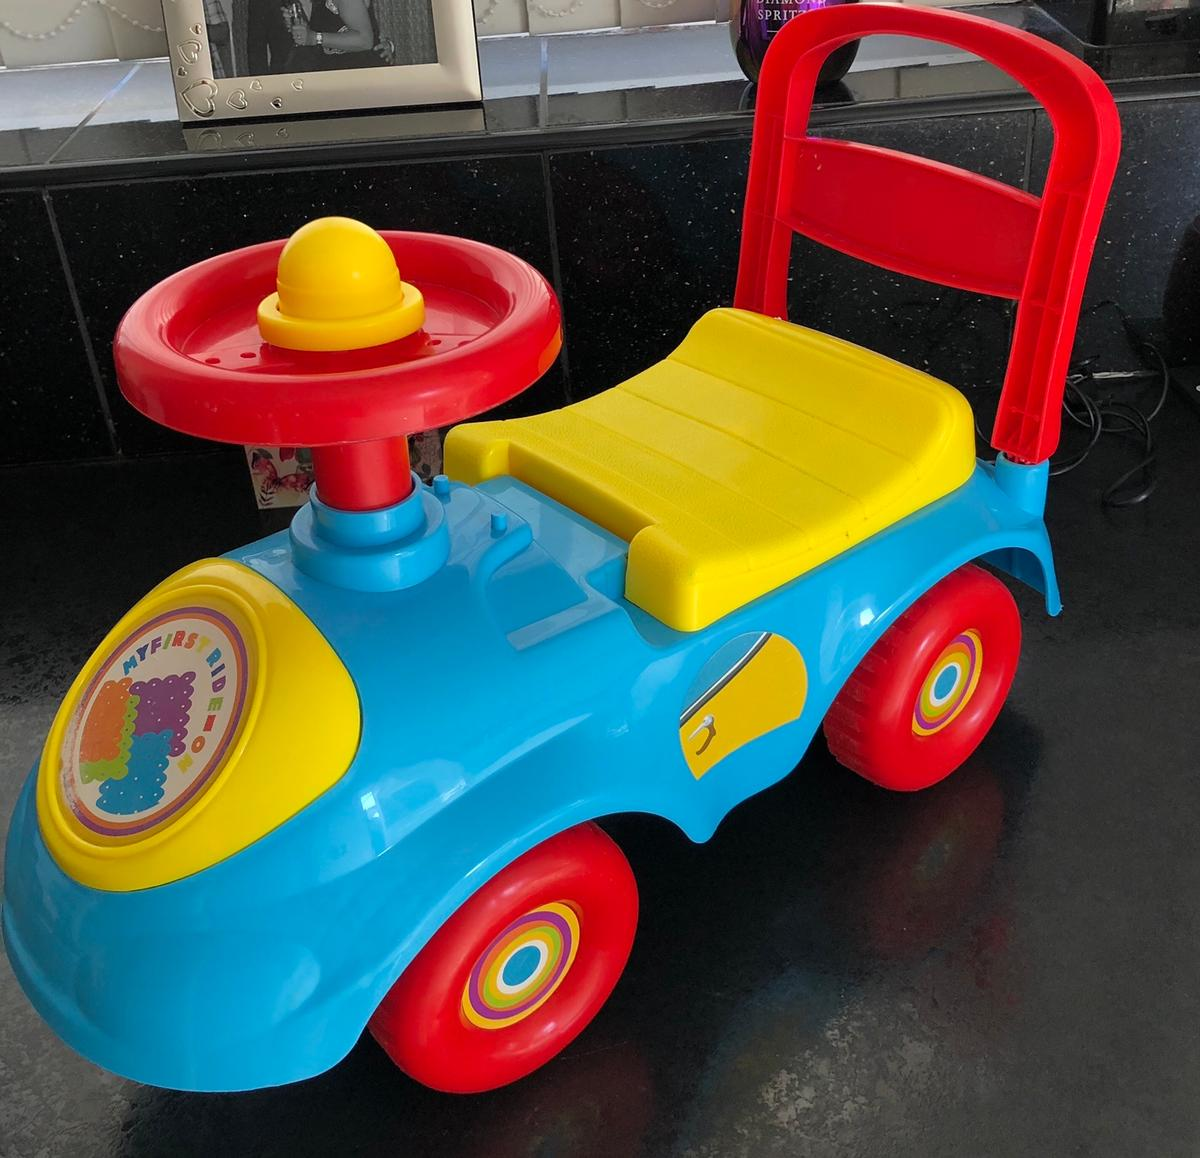 Small ride on car With lift up seat Keep toddler entertained for hours  Suitable for 9-18 months  Lovely toy  Good condition Smoke free home Only used at Grandmas House